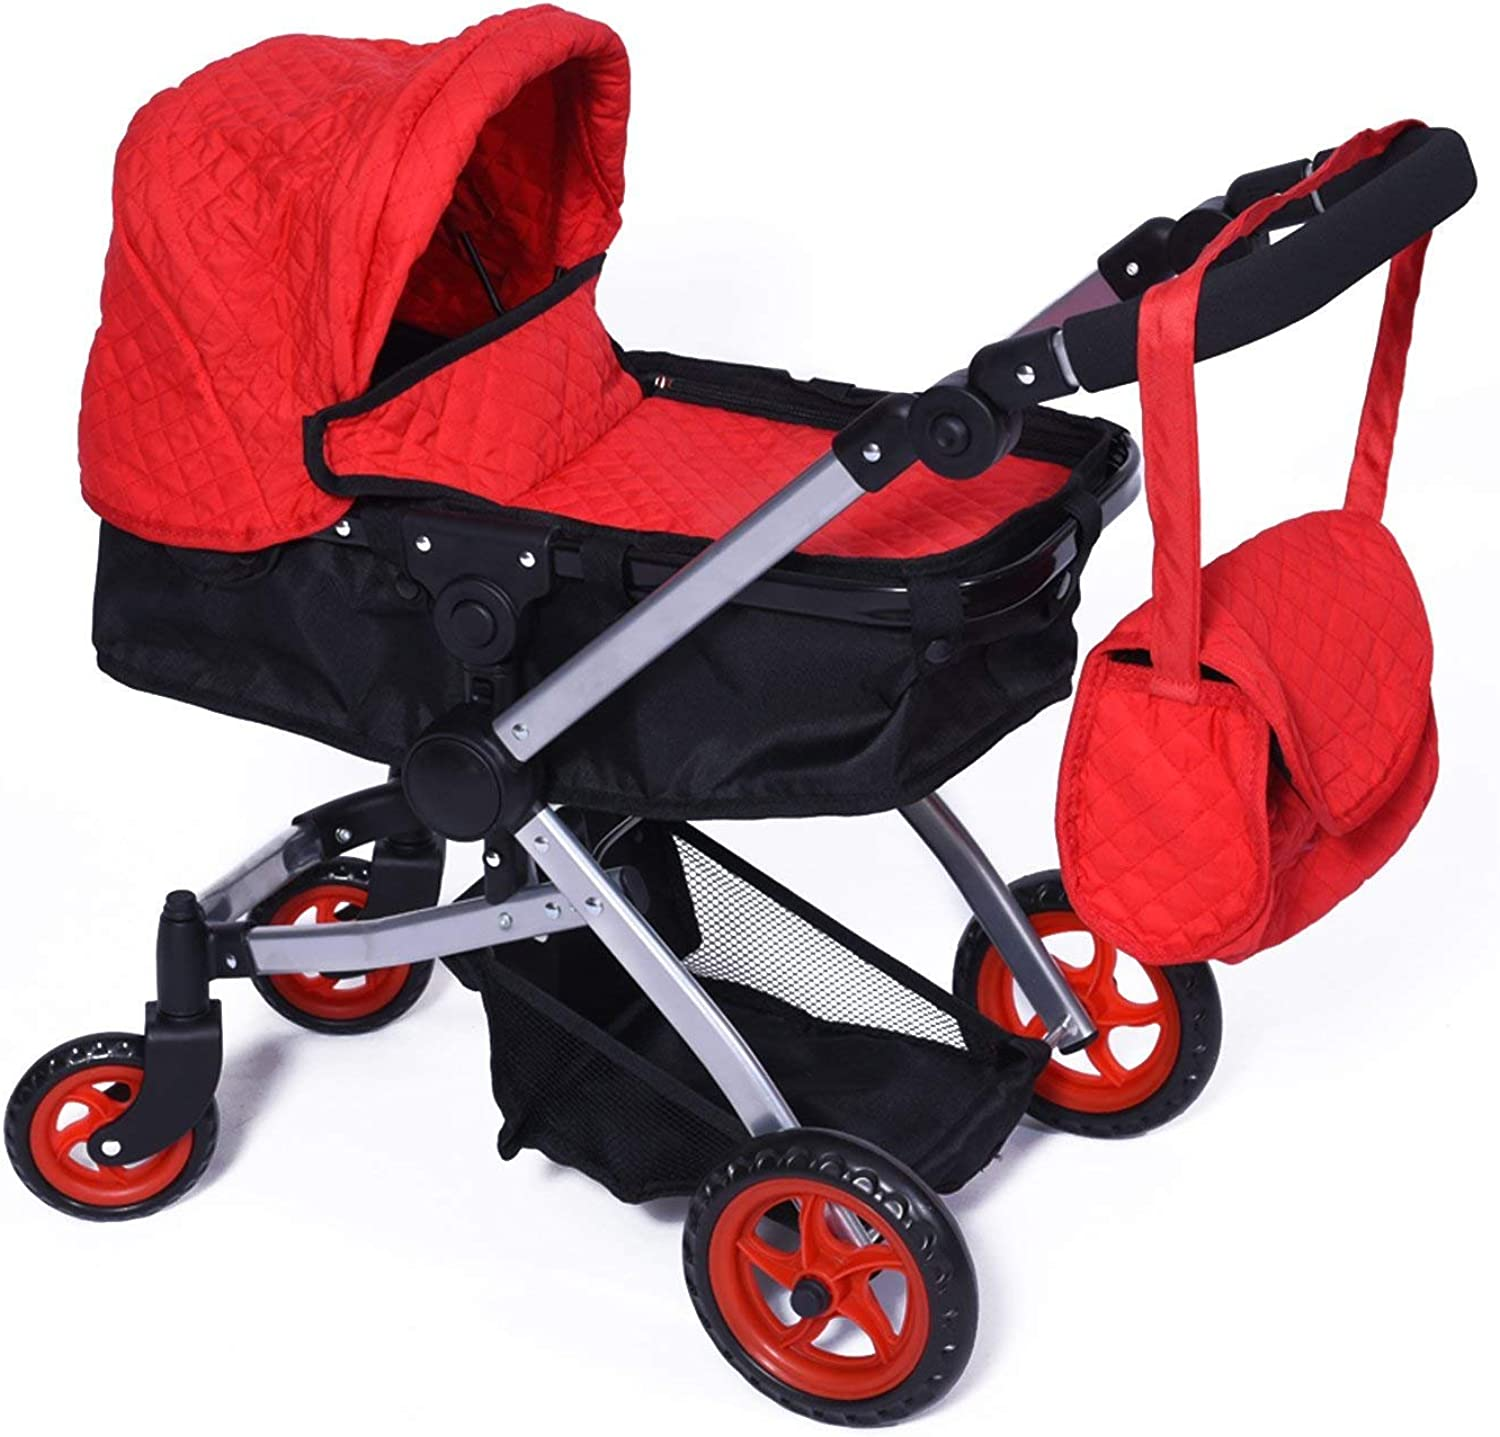 Red Quilted Baby Doll Stroller with Swiveling Wheels & Adjustable Handle  FREE Carriage Bag.